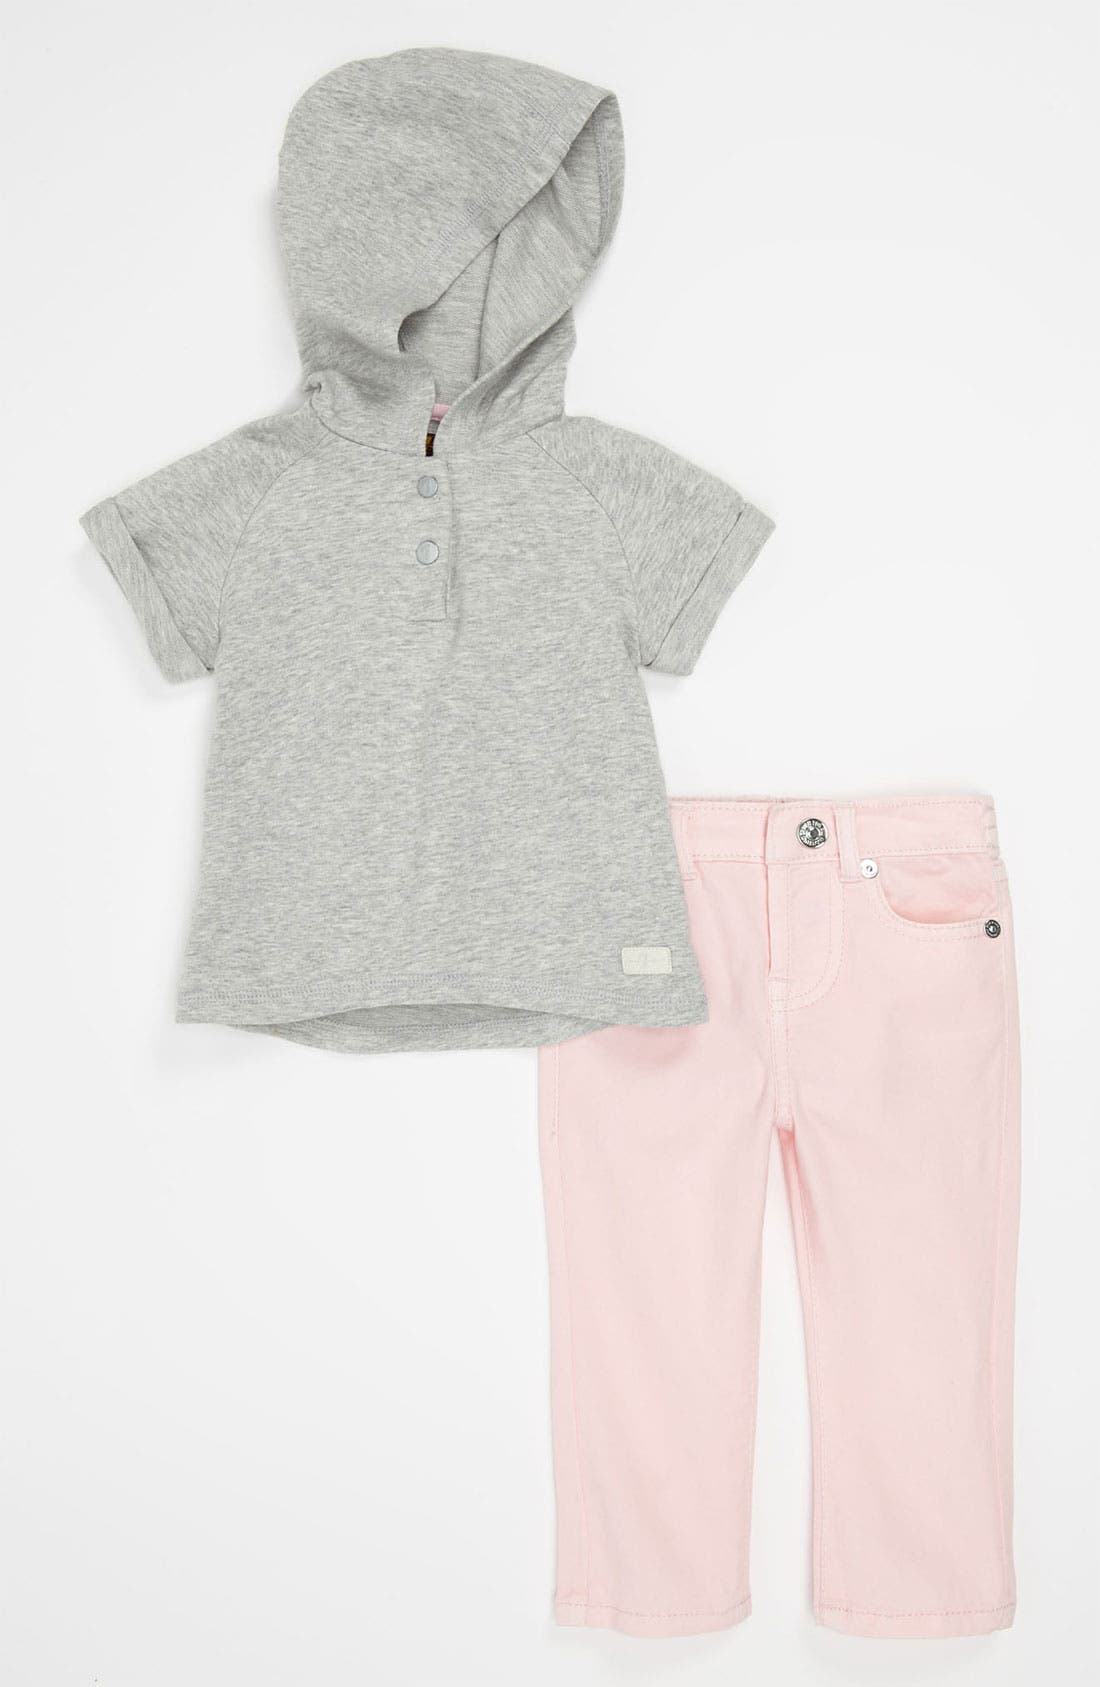 Main Image - 7 For All Mankind® Hoodie & Jeans (Infant)